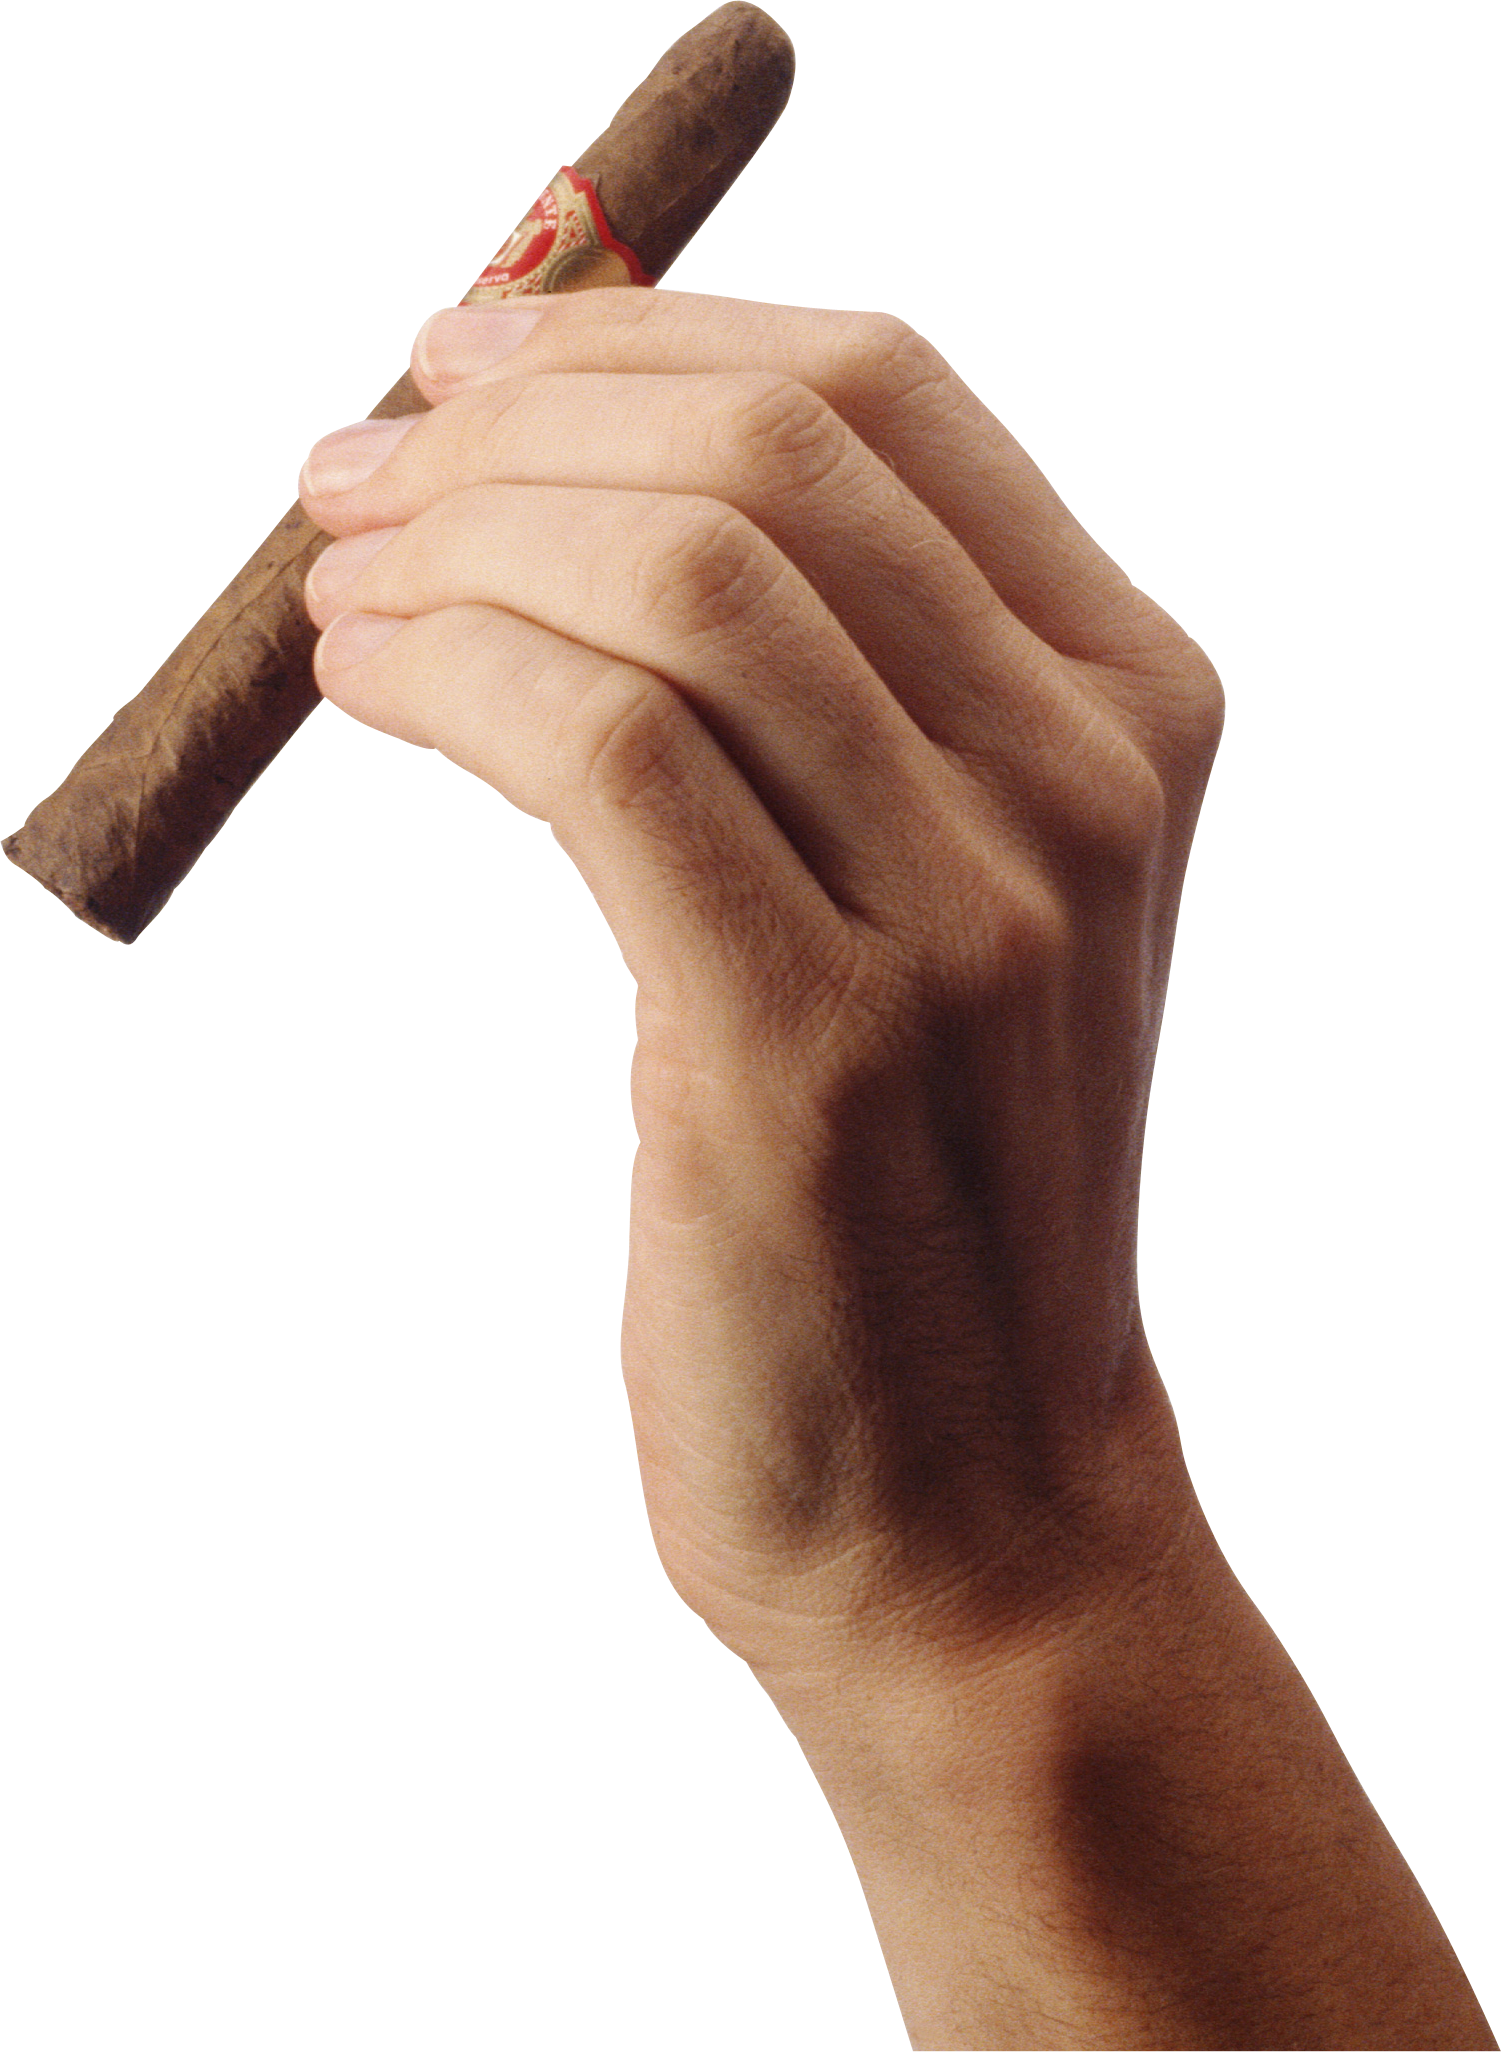 Cigar clipart file. Hand holding isolated stock